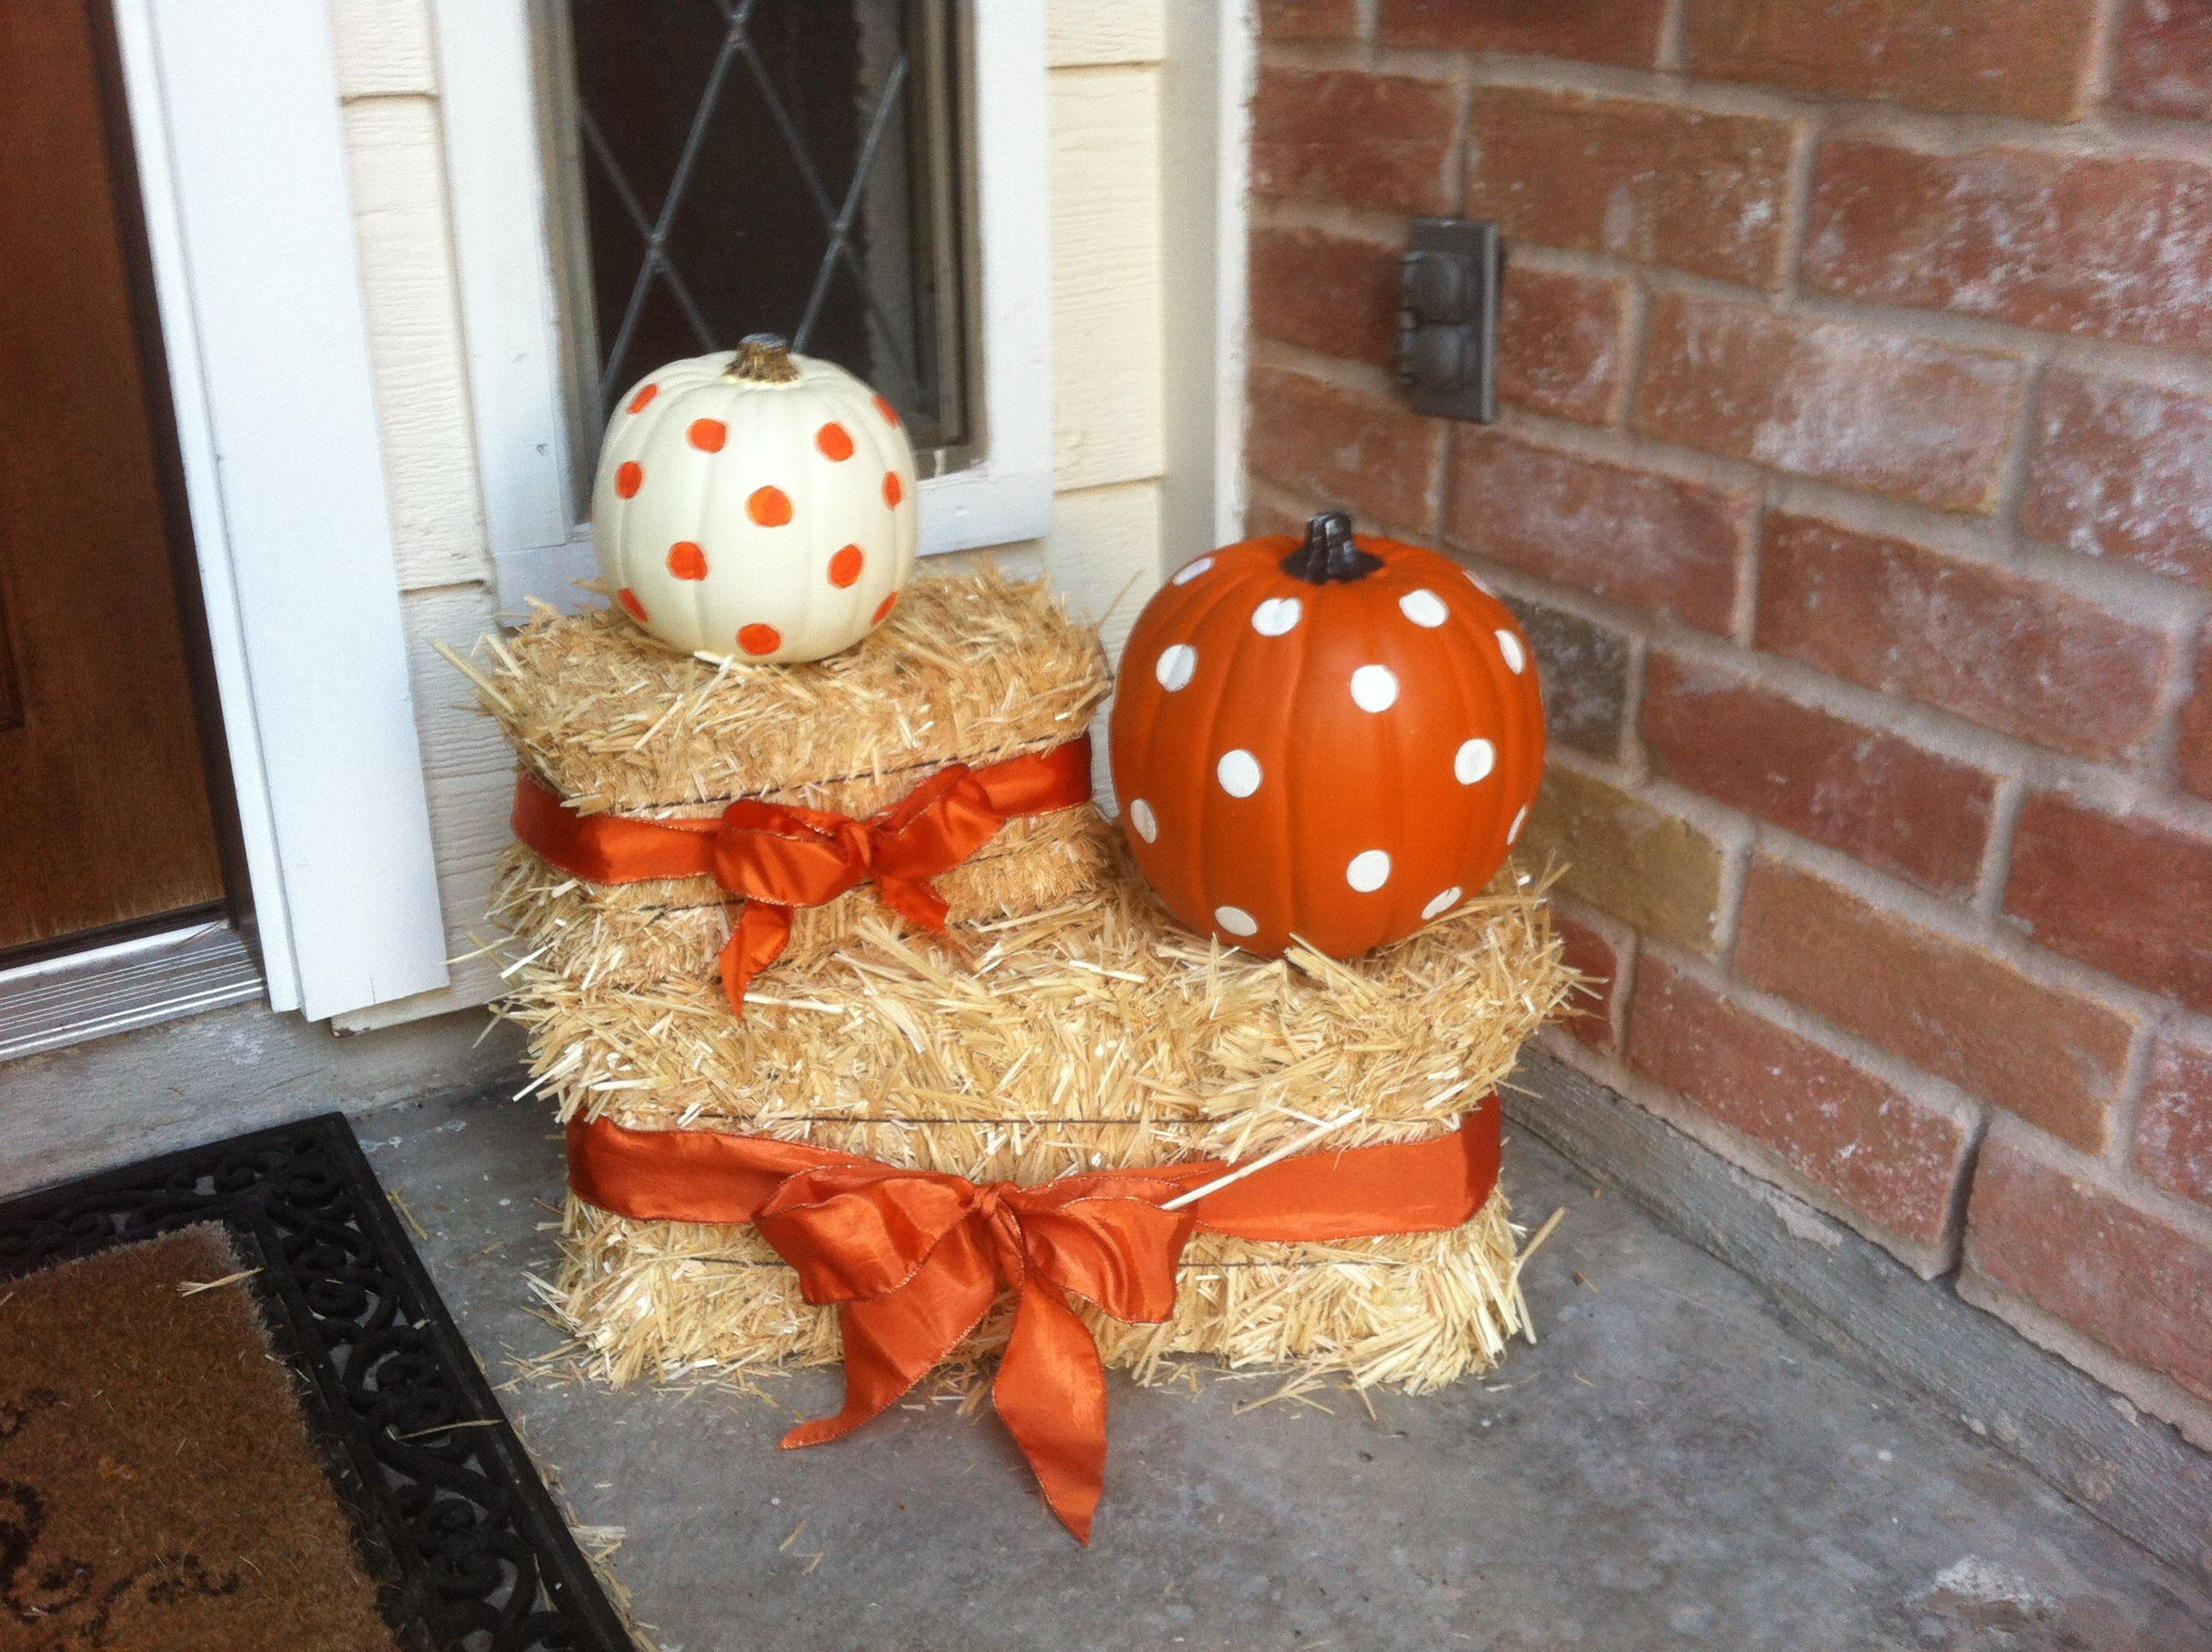 Polka dot pumpkins and bows Cute pumpkin and hay bale decor for Ideas of Fall And Halloween Decorations